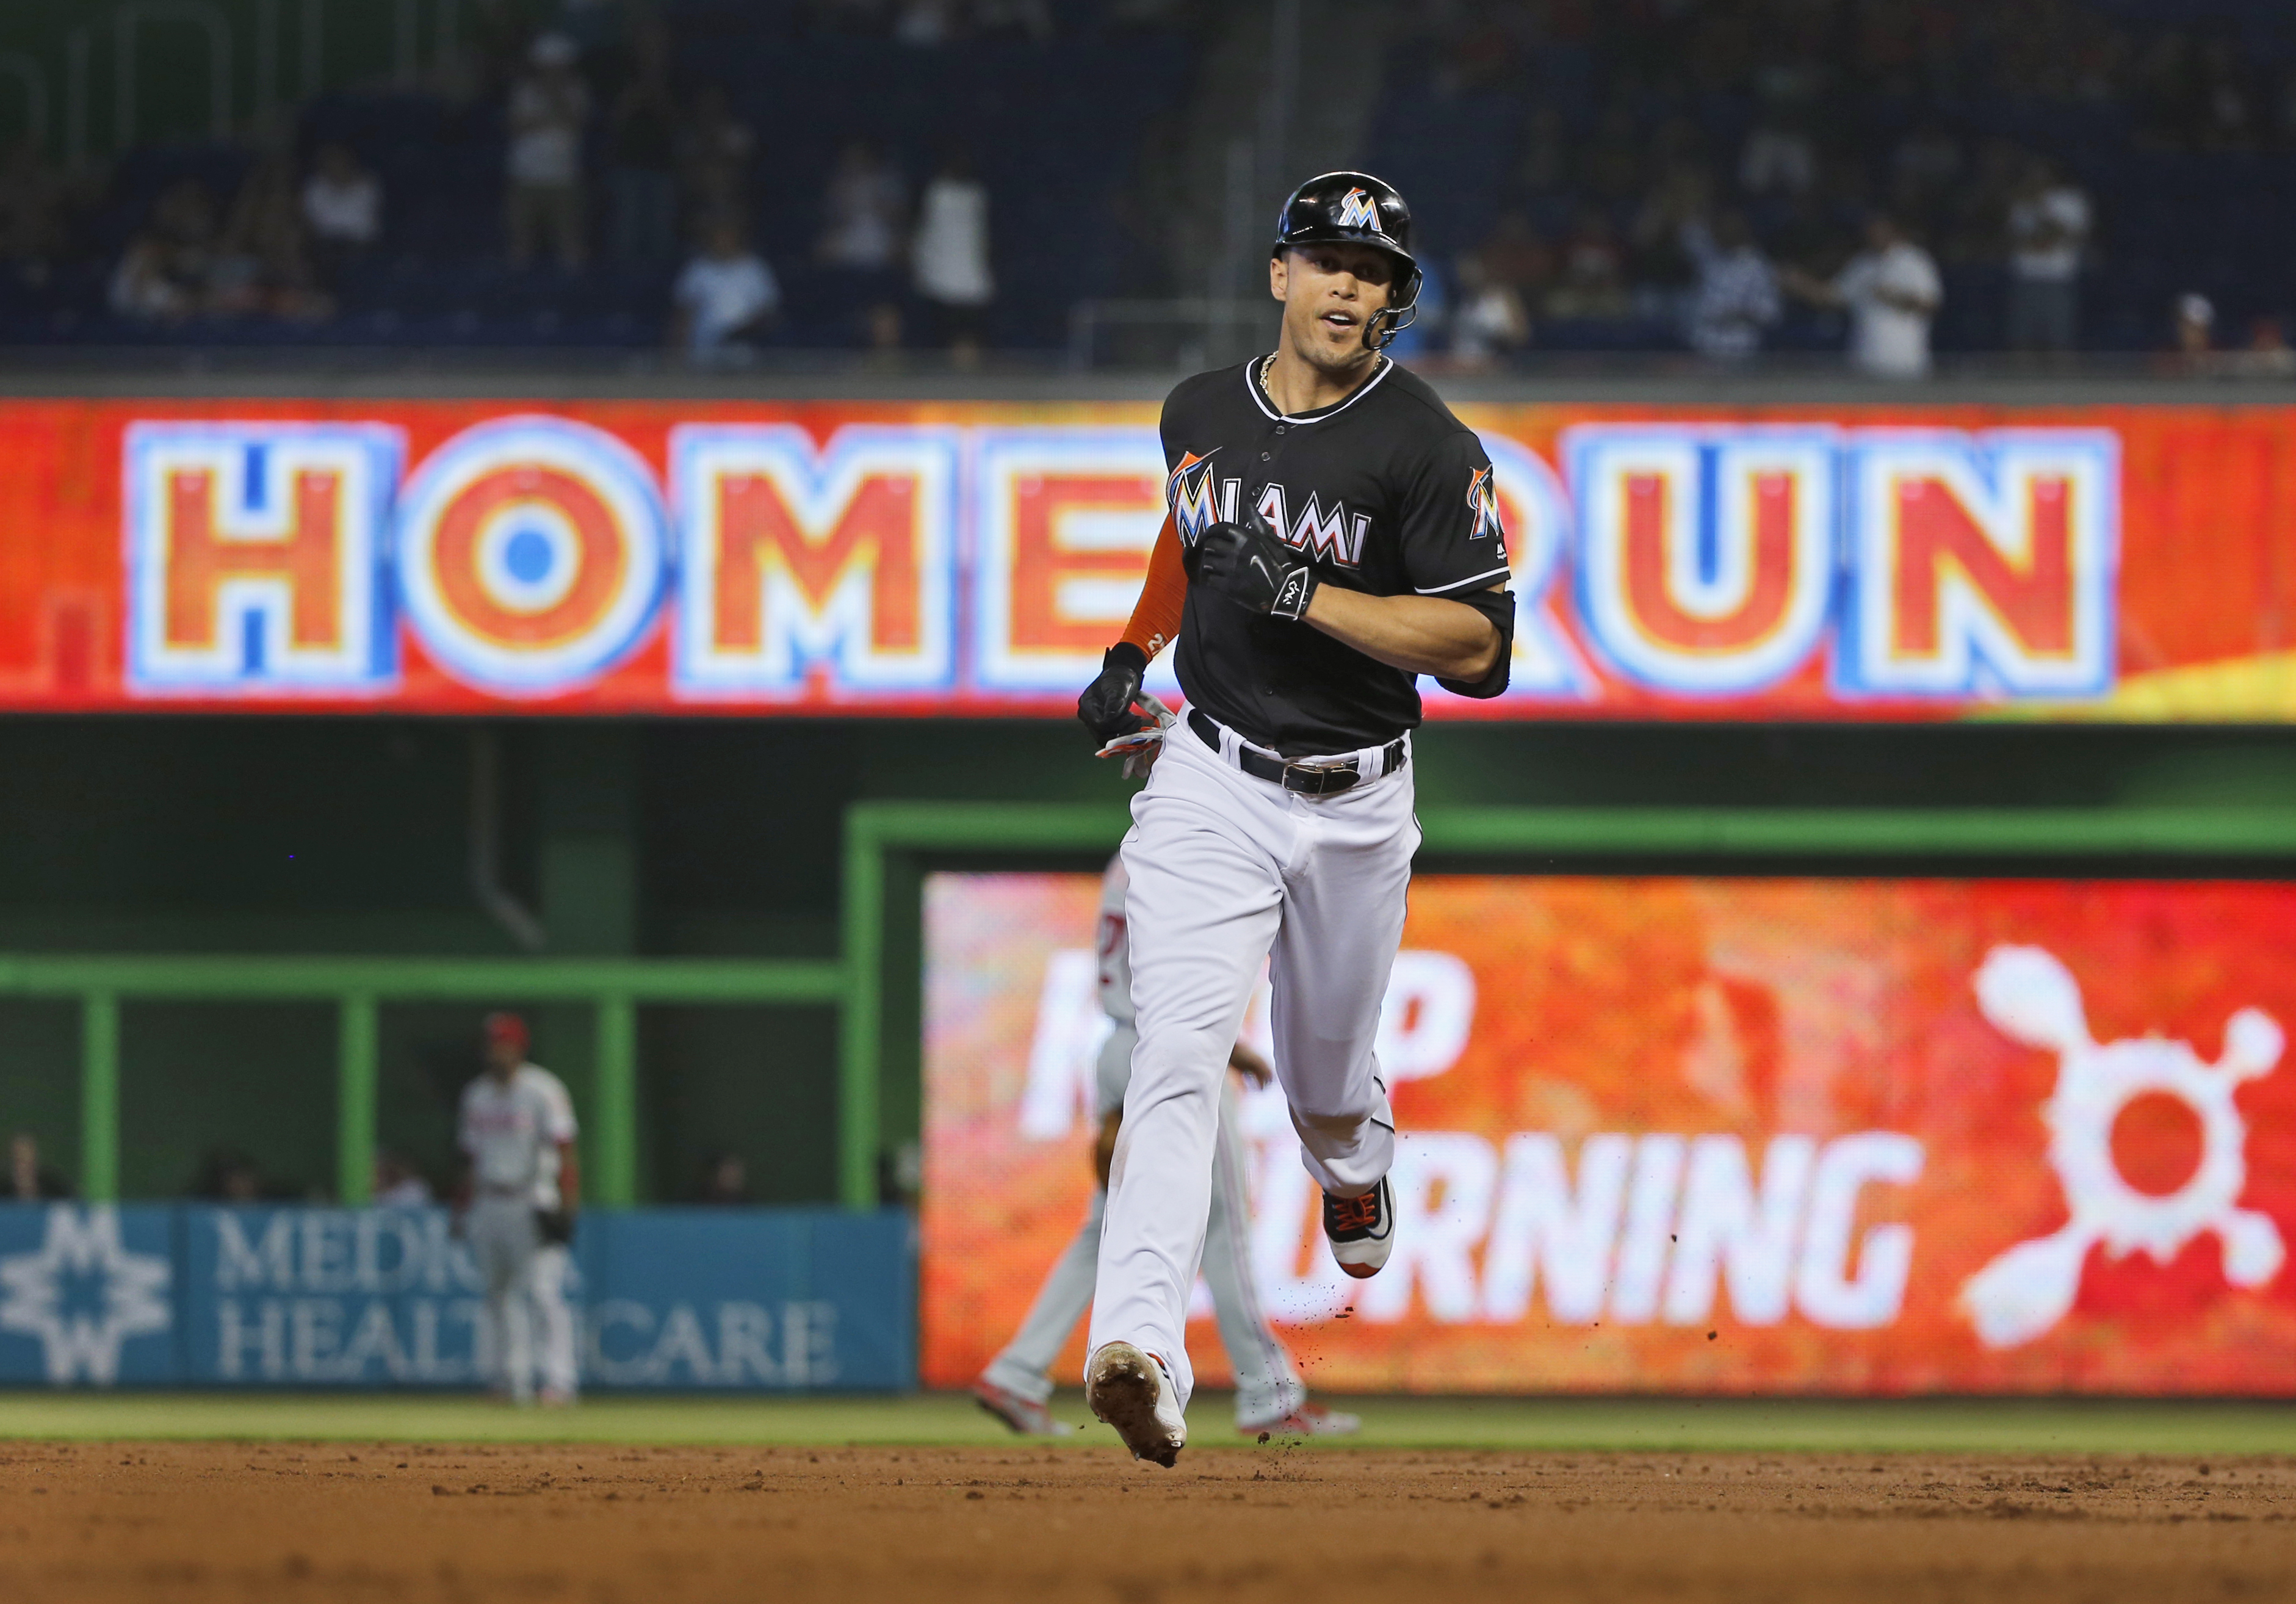 Miami Marlins' Giancarlo Stanton rounds second base as he heads for home after hitting a home run during the first inning of a baseball game against the Philadelphia Phillies, Wednesday, July 27, 2016, in Miami. (AP Photo/Wilfredo Lee)